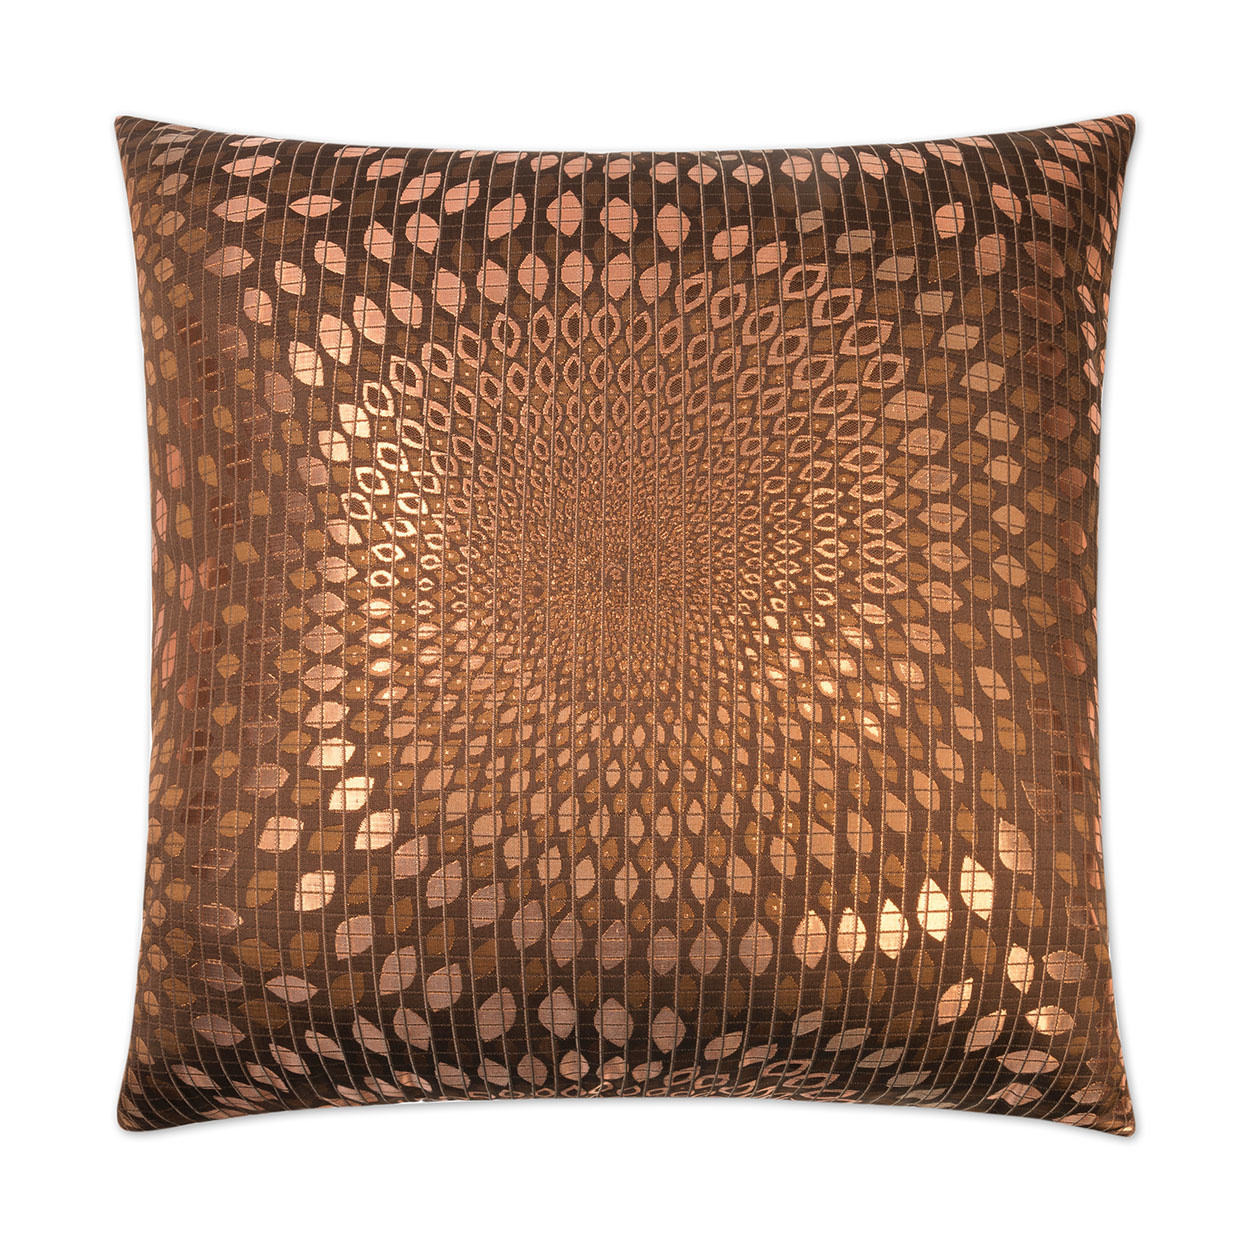 Whirl Pillow - Copper 24 x 24